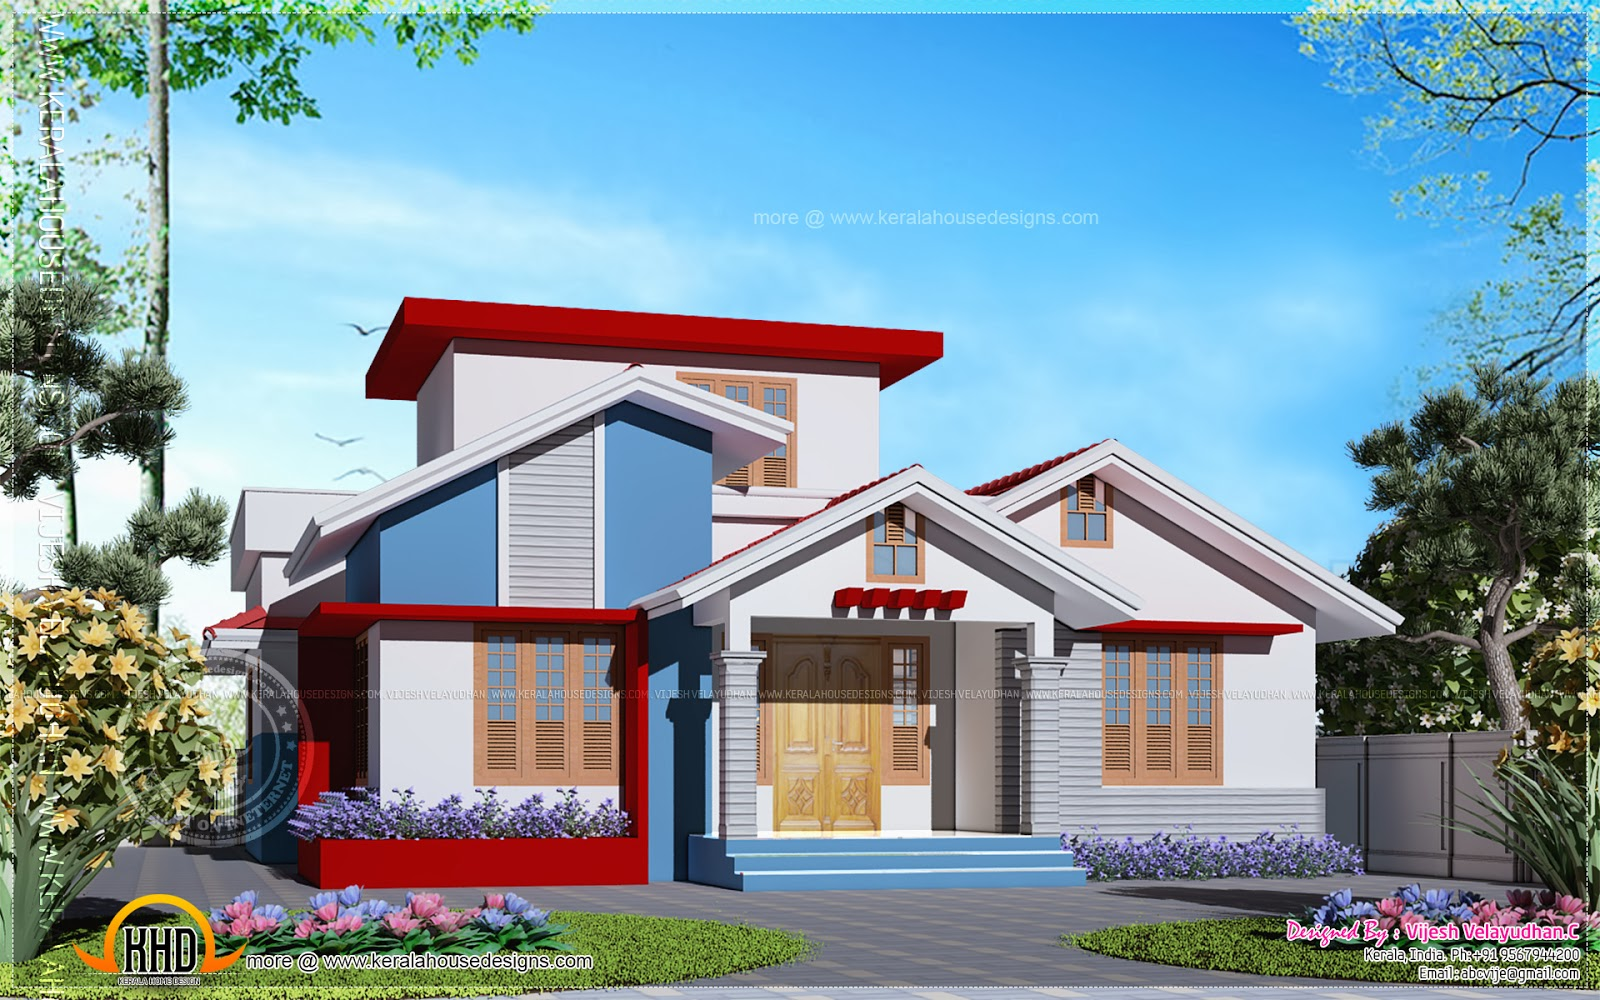 kerala house designs single floor kerala home design single floor - Single Floor House Plans